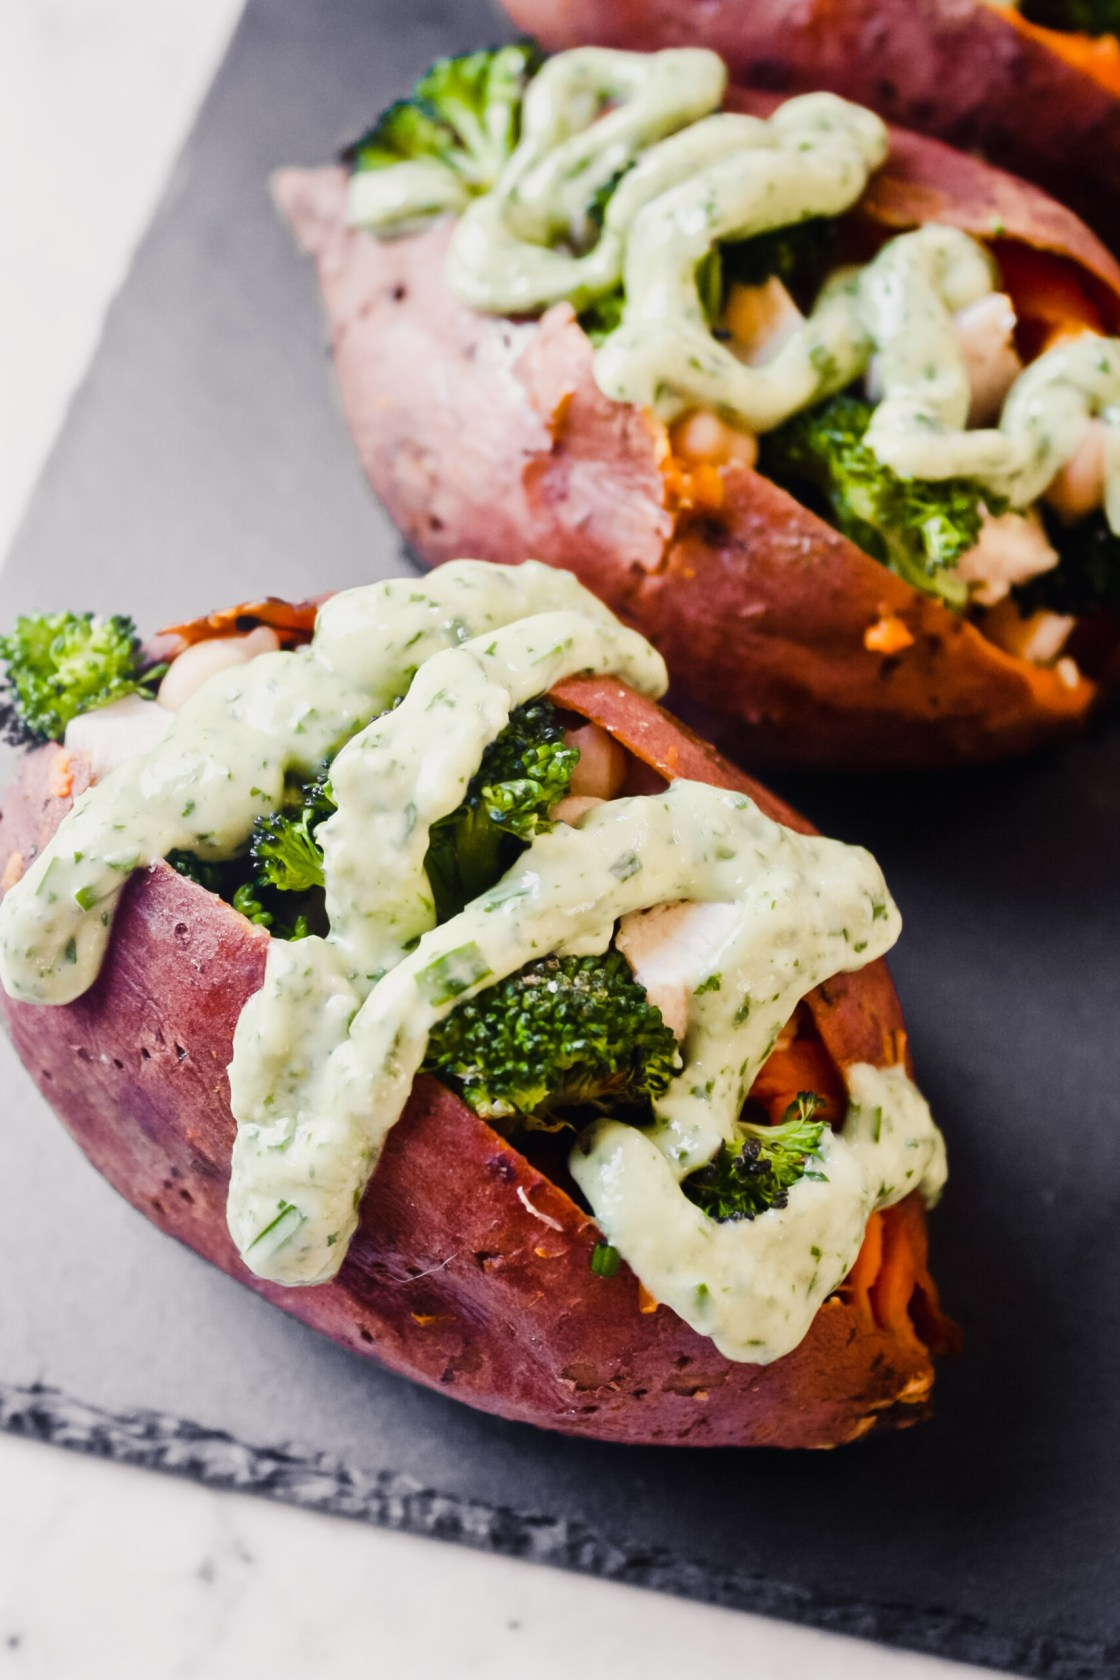 photograph of stuffed sweet potatoes drizzled with a green goddess dressing